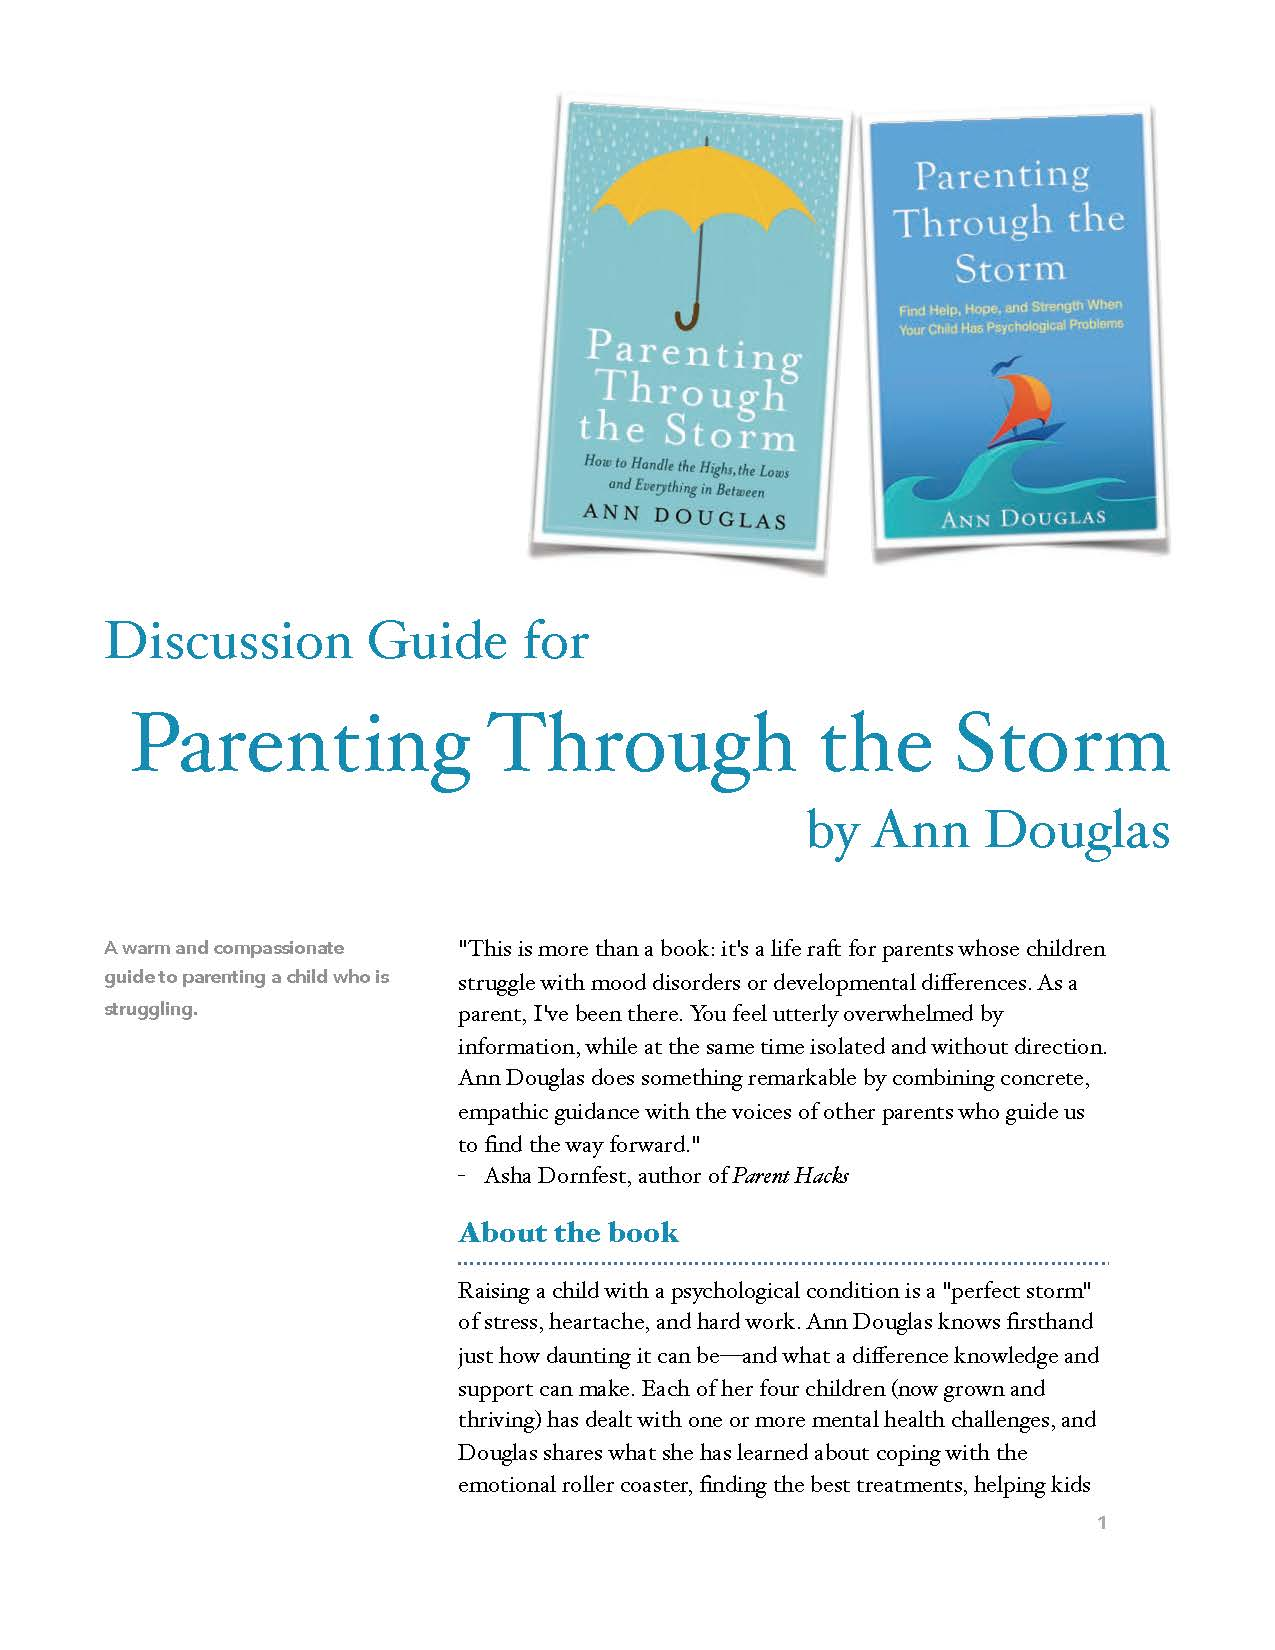 reading-group-parenting-through-the-storm.jpg